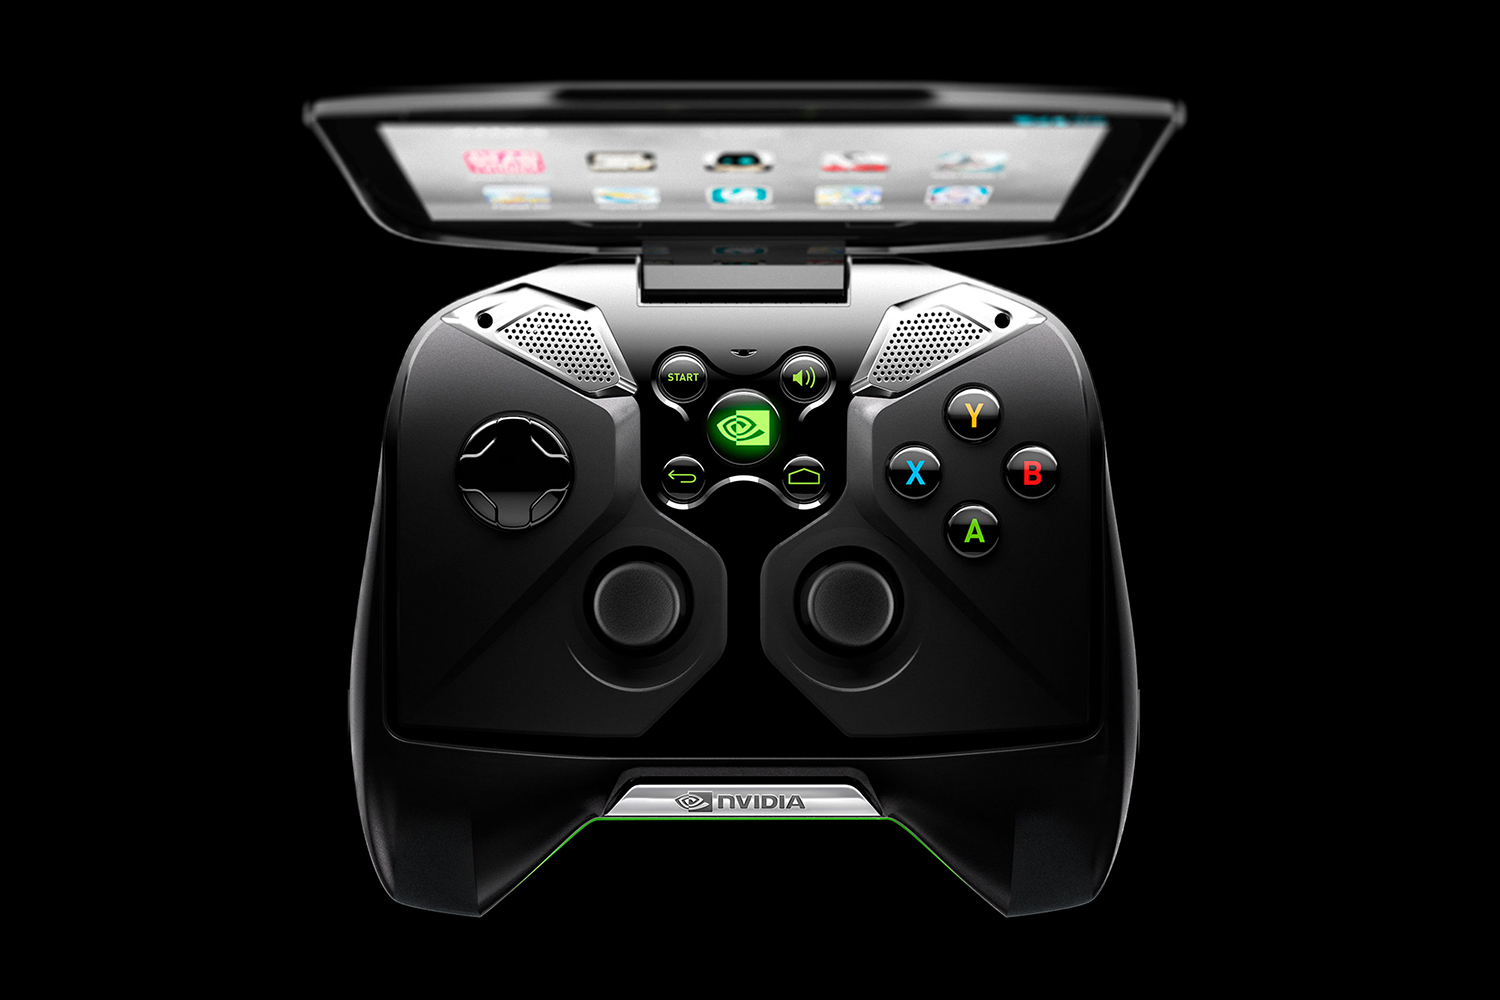 nvidia announces project shield handheld game console hypebeast. Black Bedroom Furniture Sets. Home Design Ideas